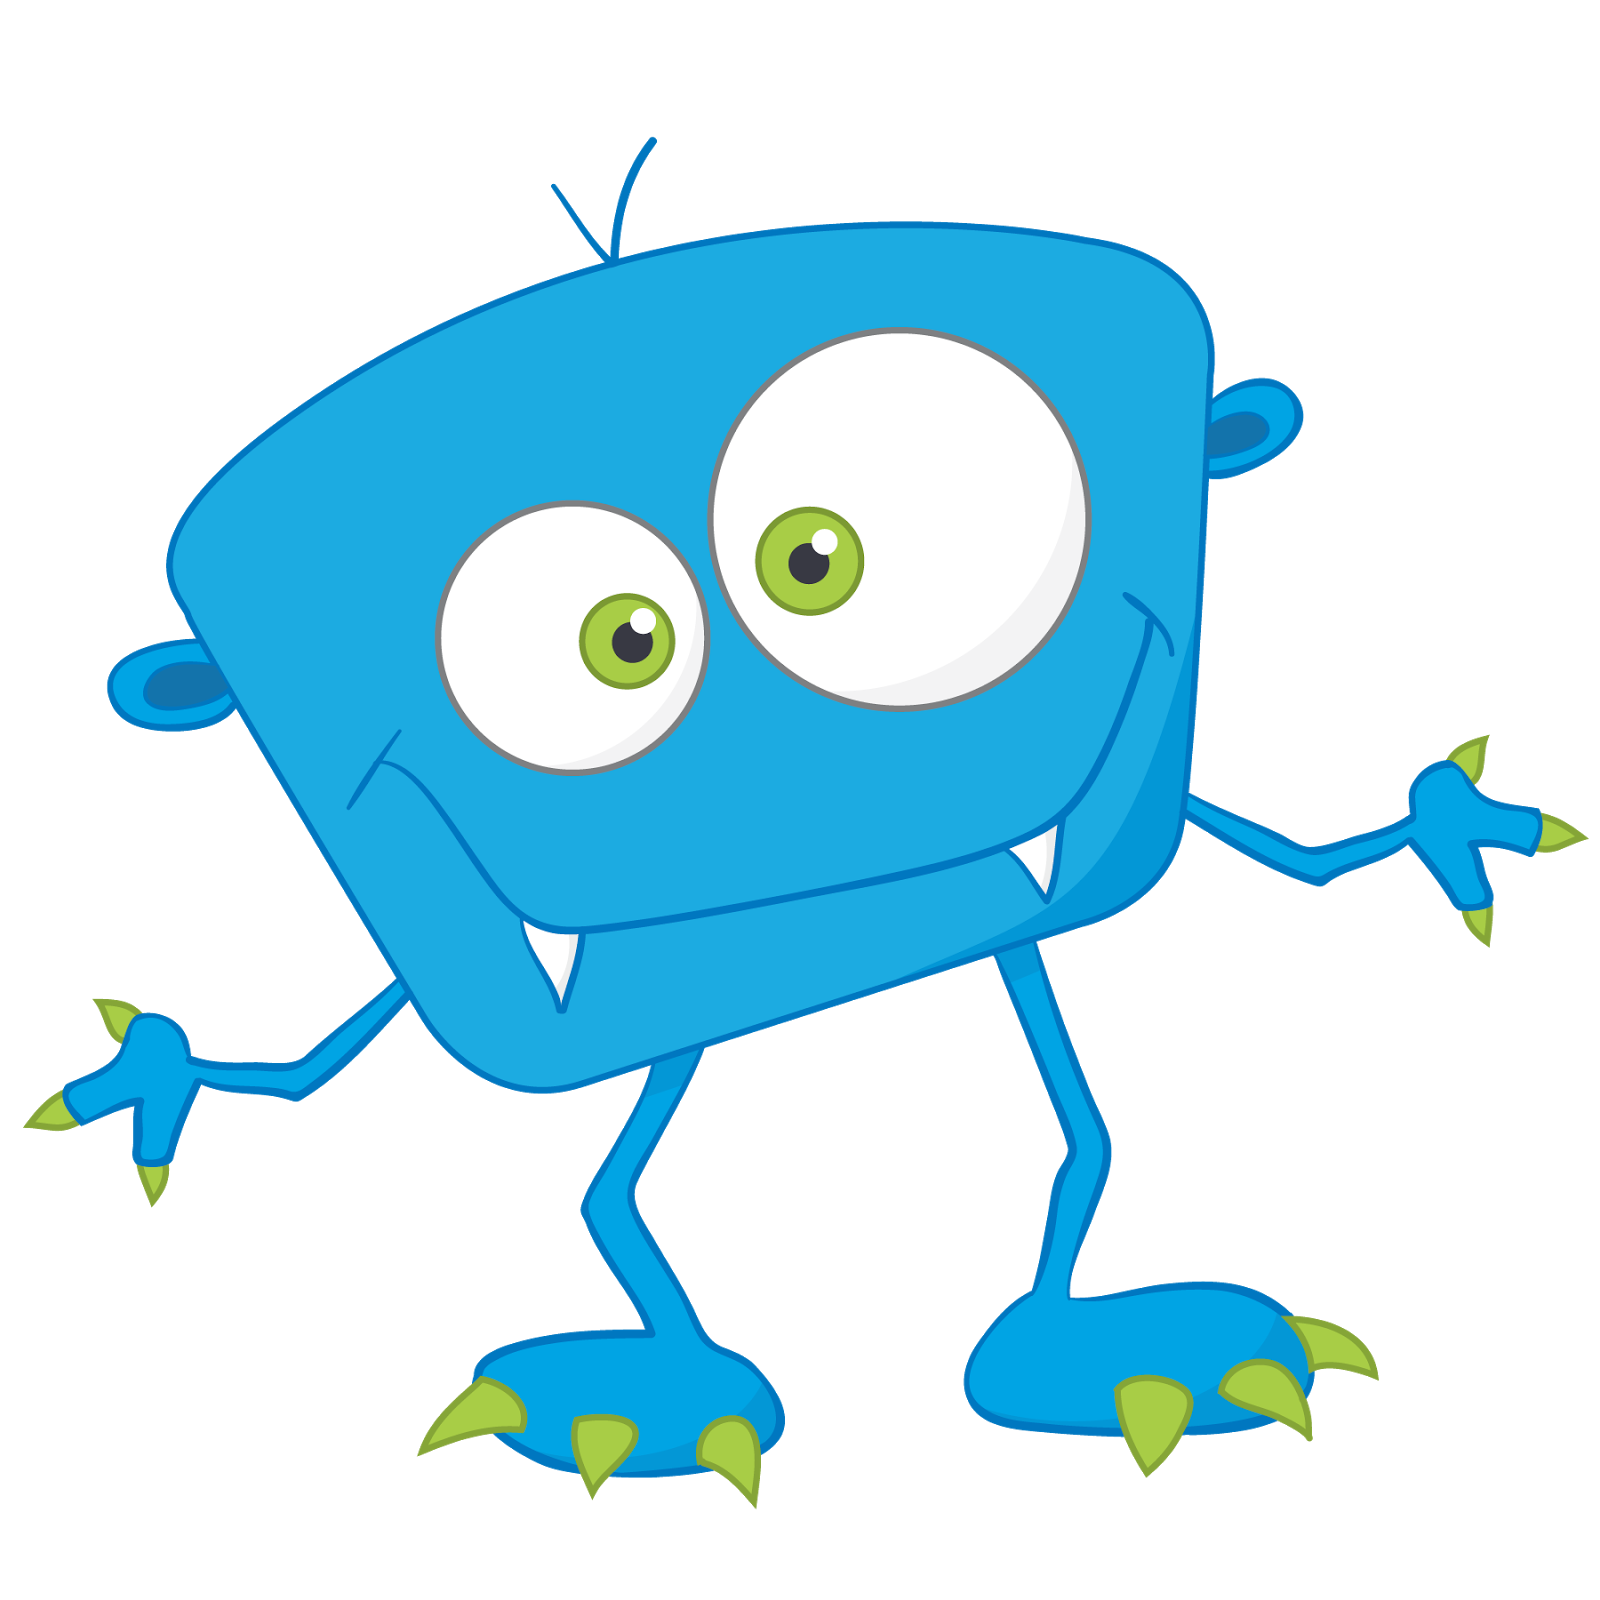 Playdough clipart my cute graphic. Clip art monsters image